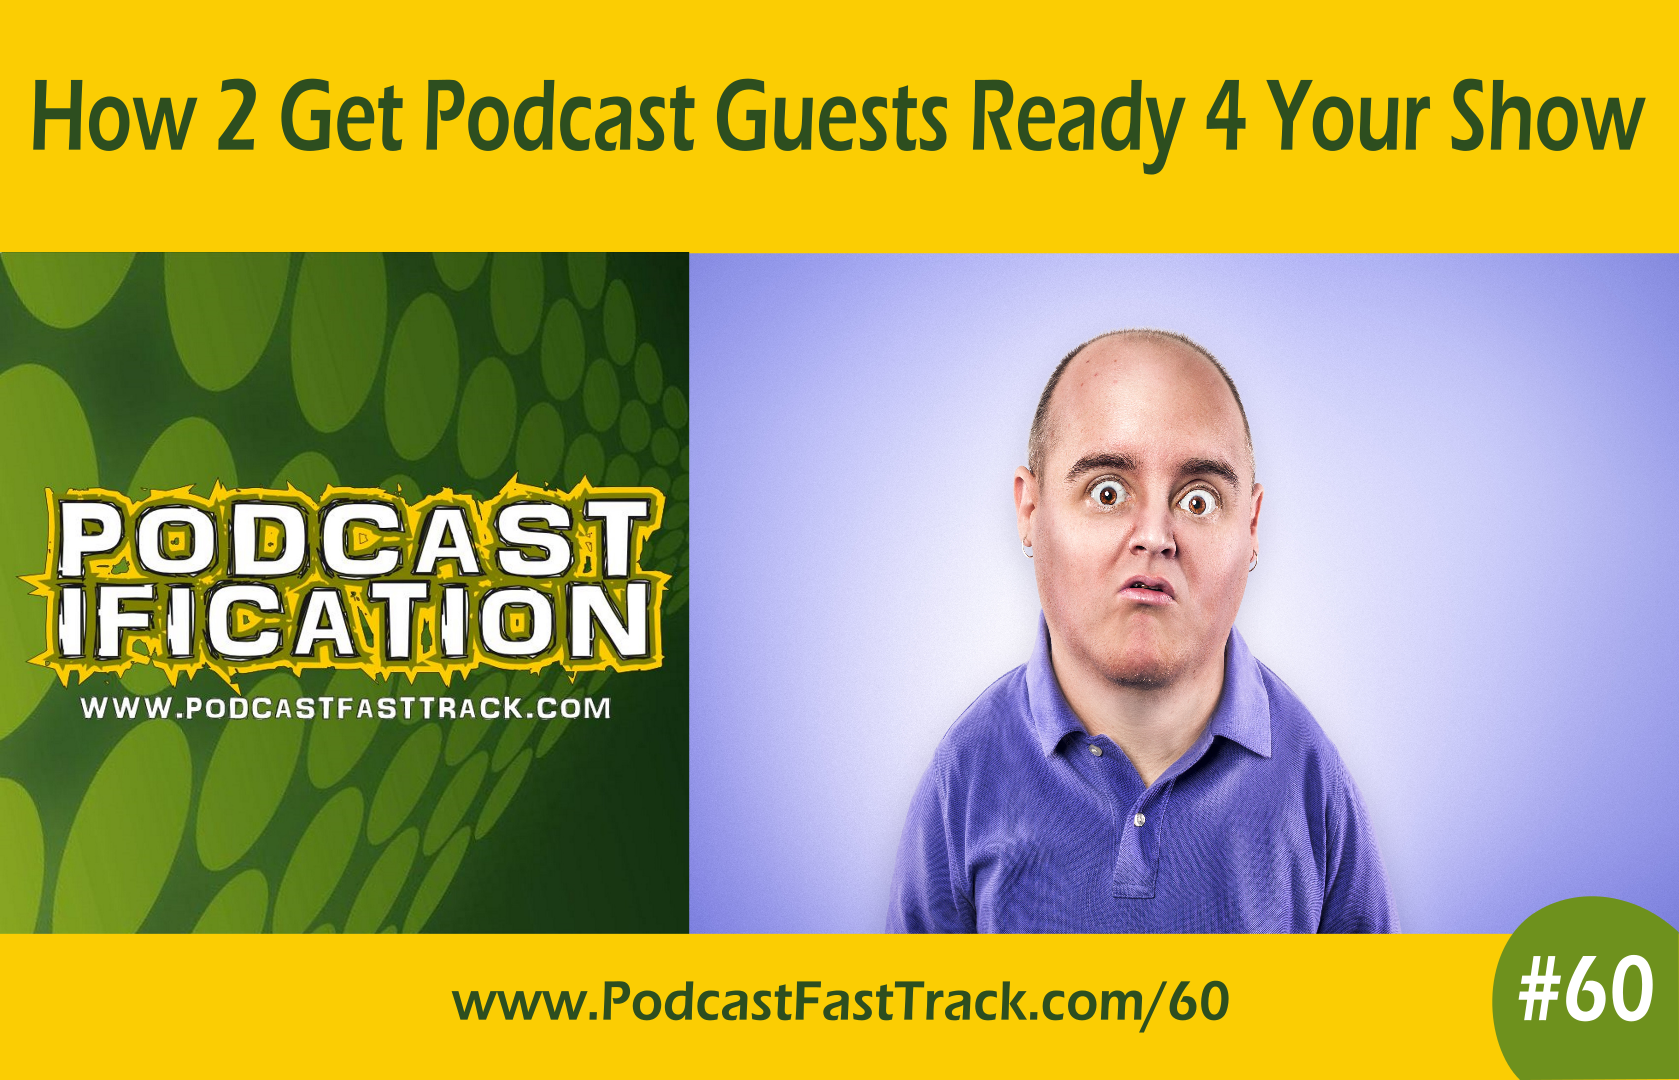 podcastificating world of podcasting  I've build a business